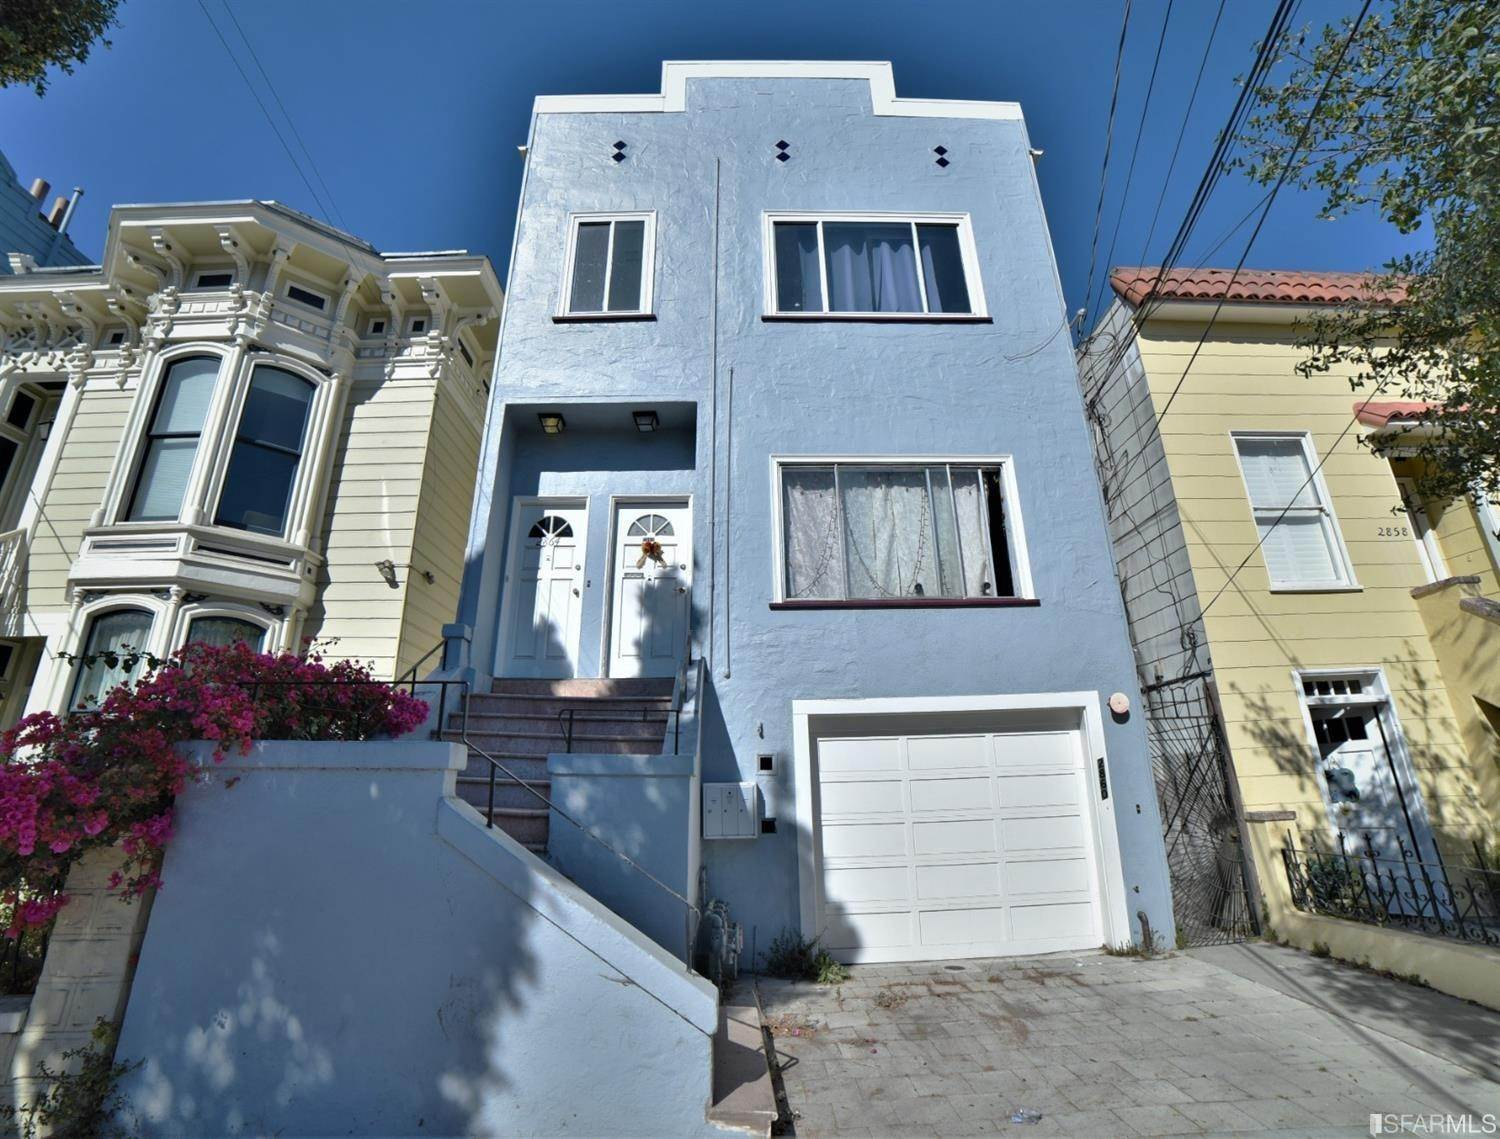 Triplex for Sale at 2860 22nd Street San Francisco, California 94110 United States